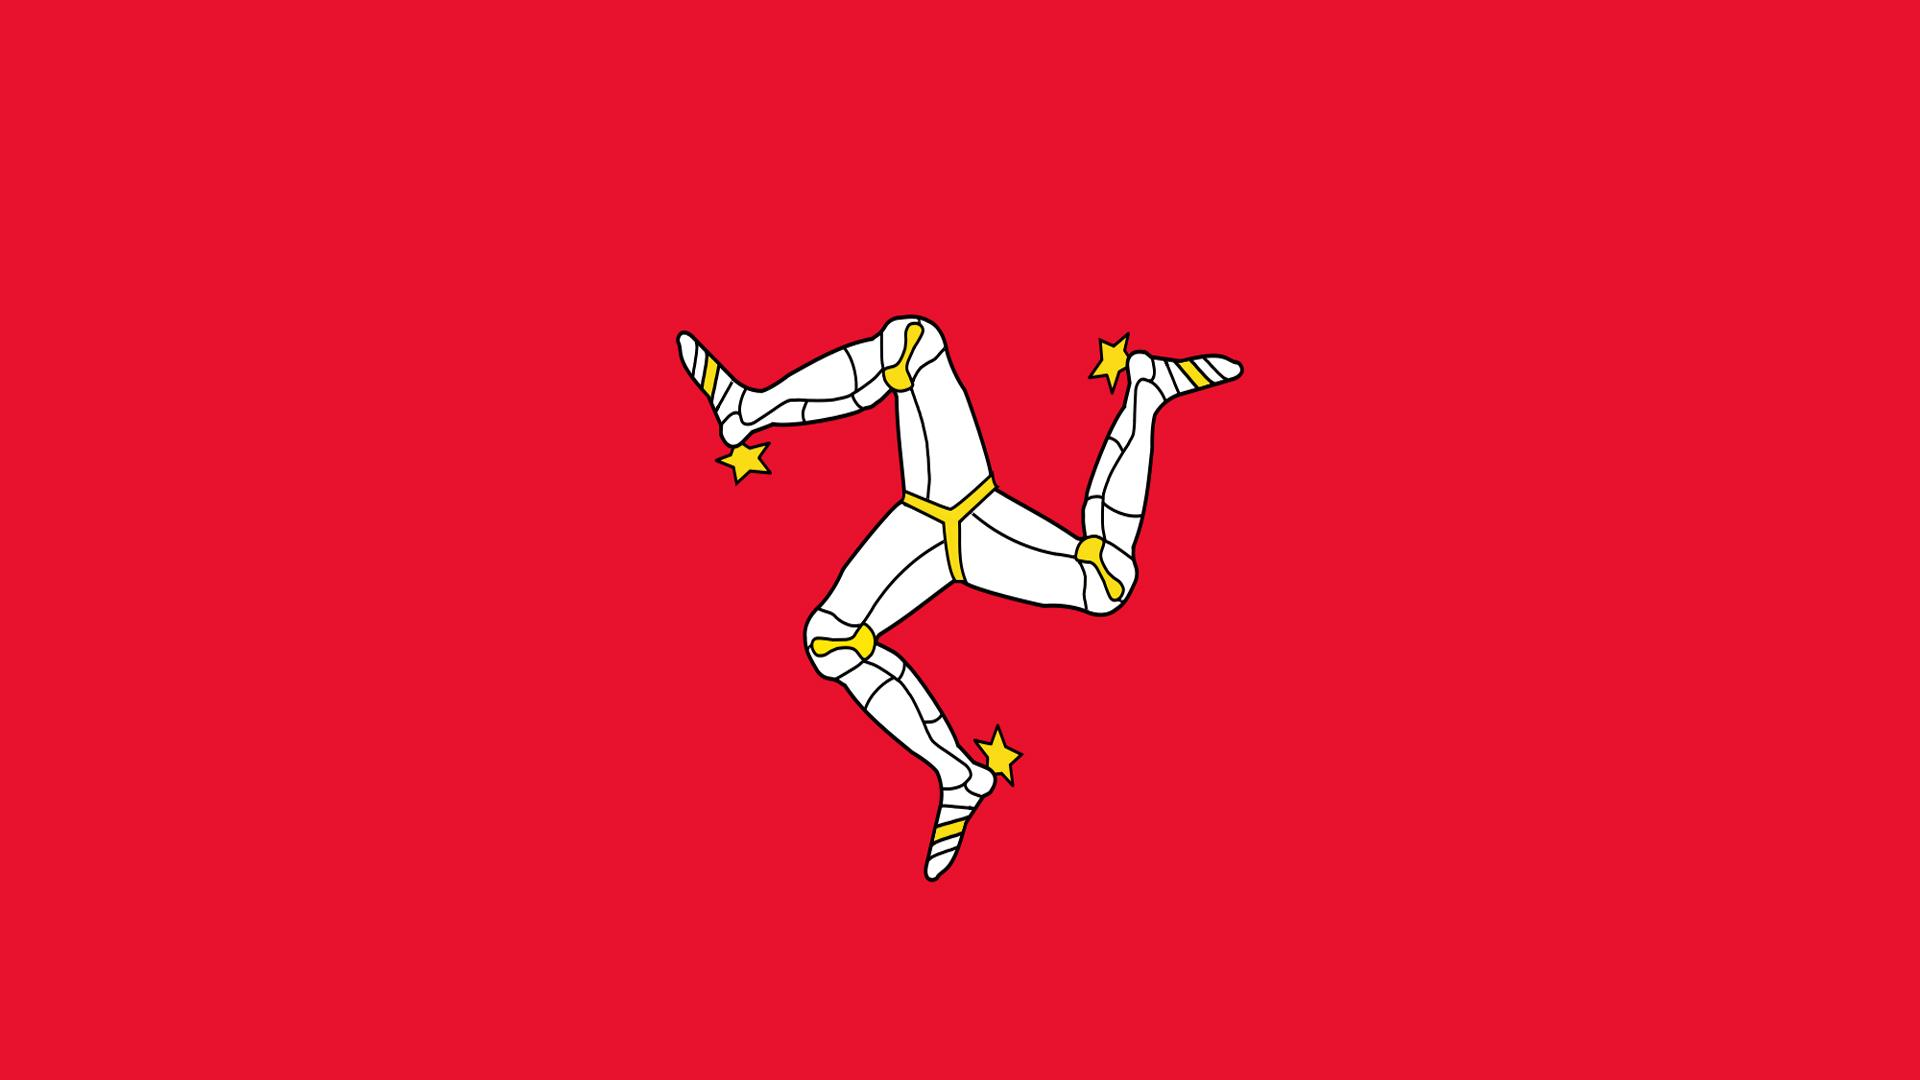 Isle of Man Flag - Wallpaper, High Definition, High Quality, Widescreen